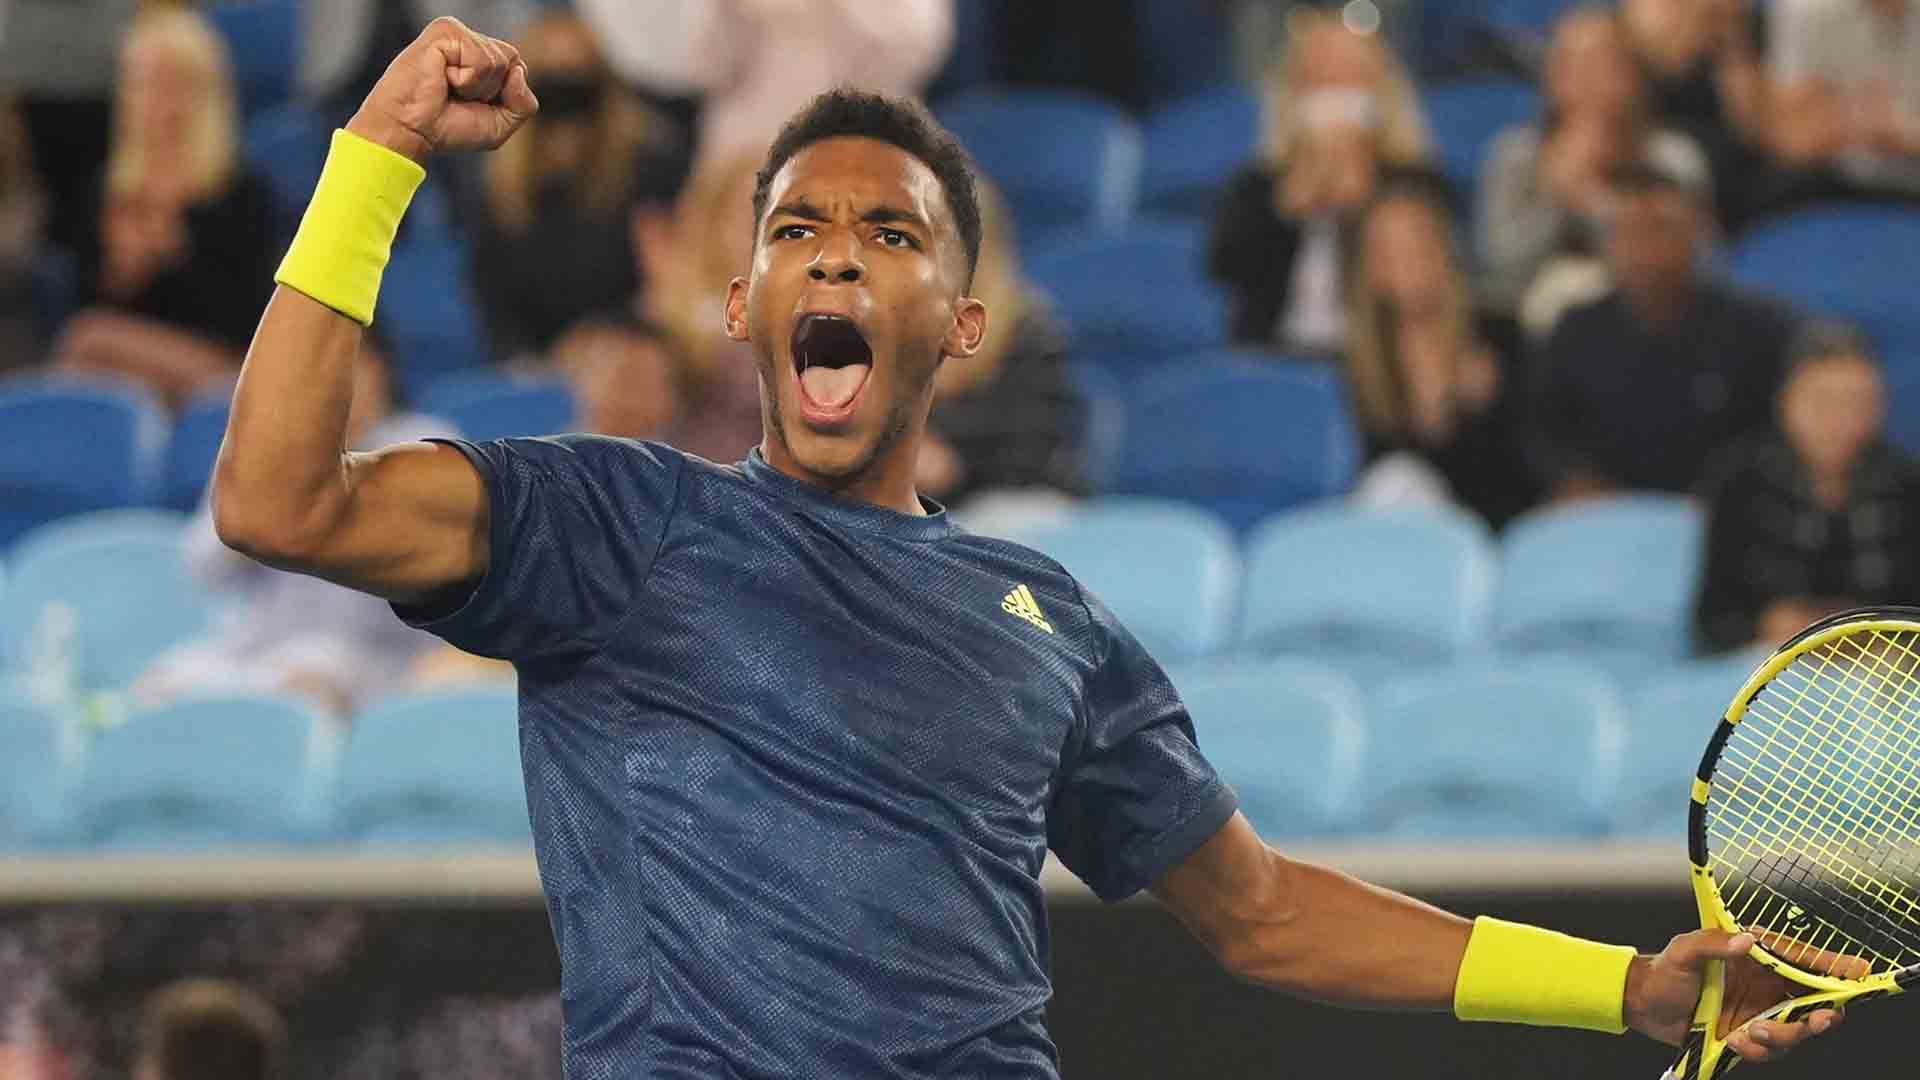 Felix Auger-Aliassime is through to the Australian Open Round of 16 for the first time.